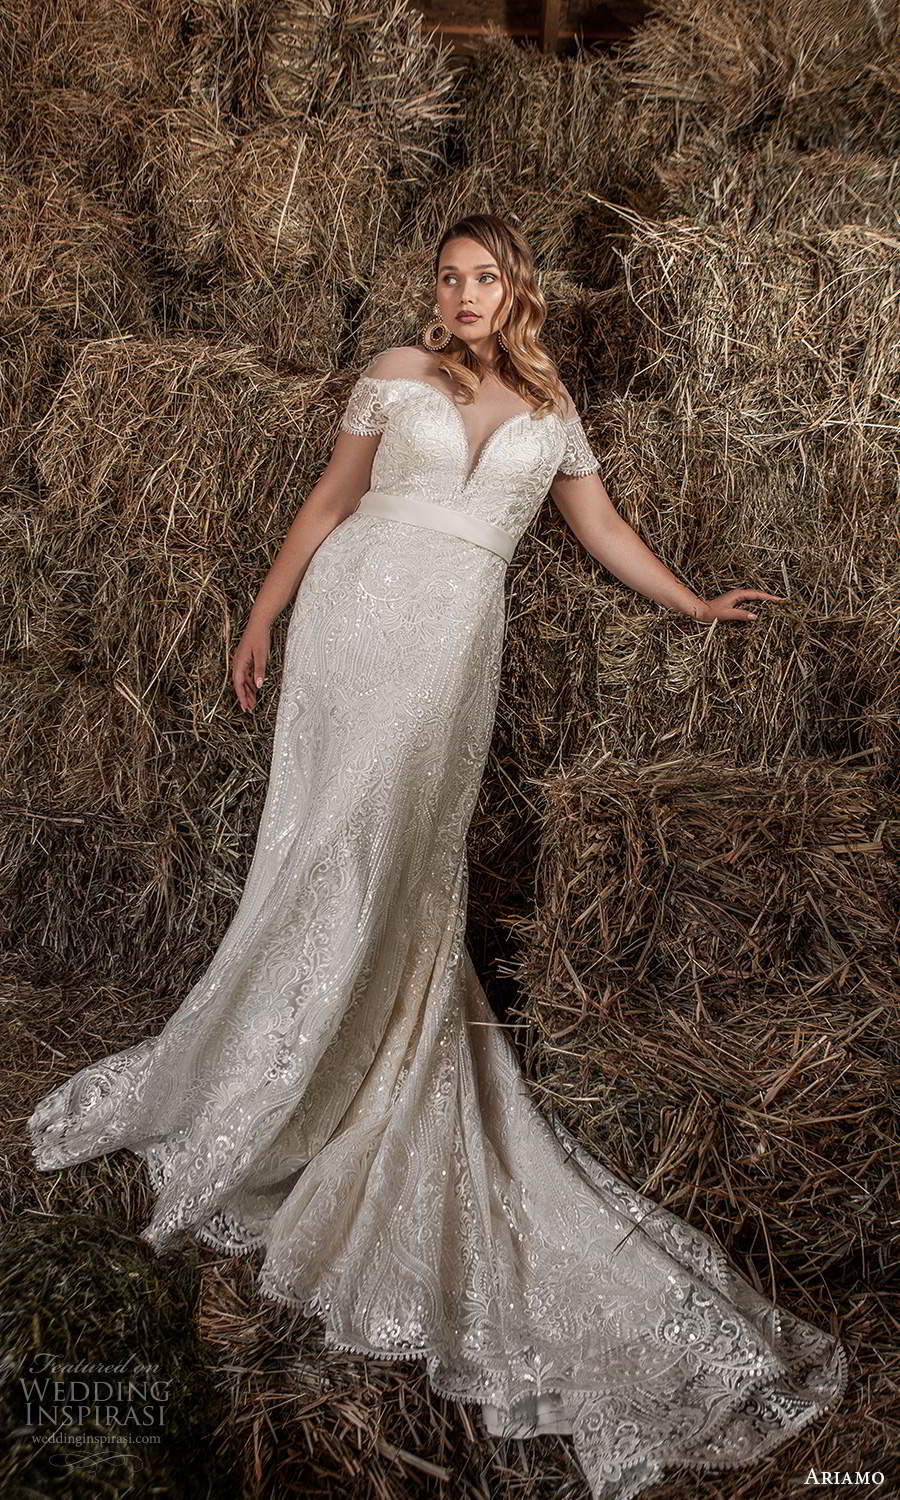 ariamo 2021 plus bridal off shoulder cap sleeves plunging sweetheart neckline fully embellished modified a line trumpet wedding dress chapel train (2) mv